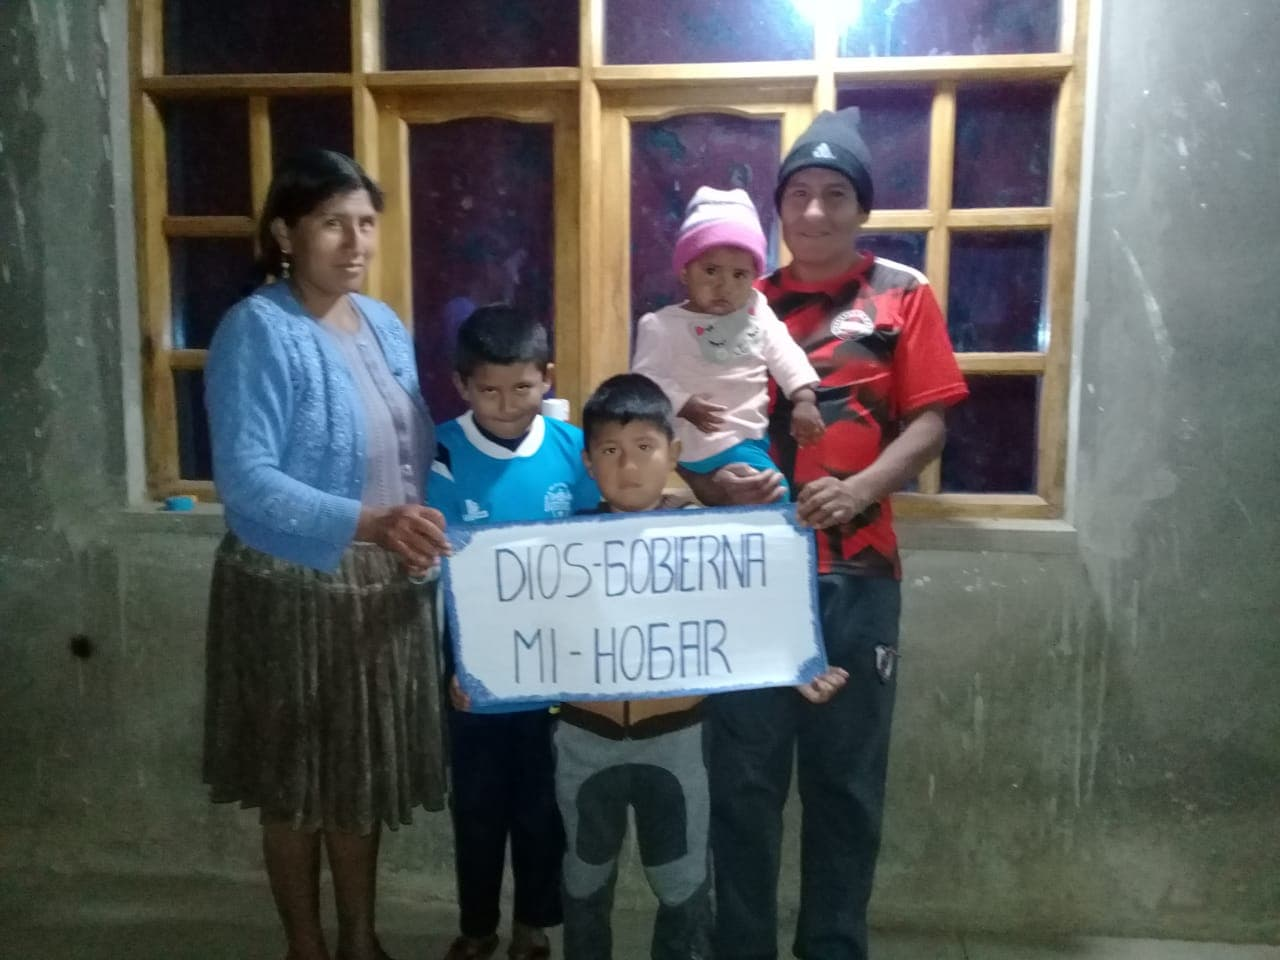 A family stands together holding a sign.